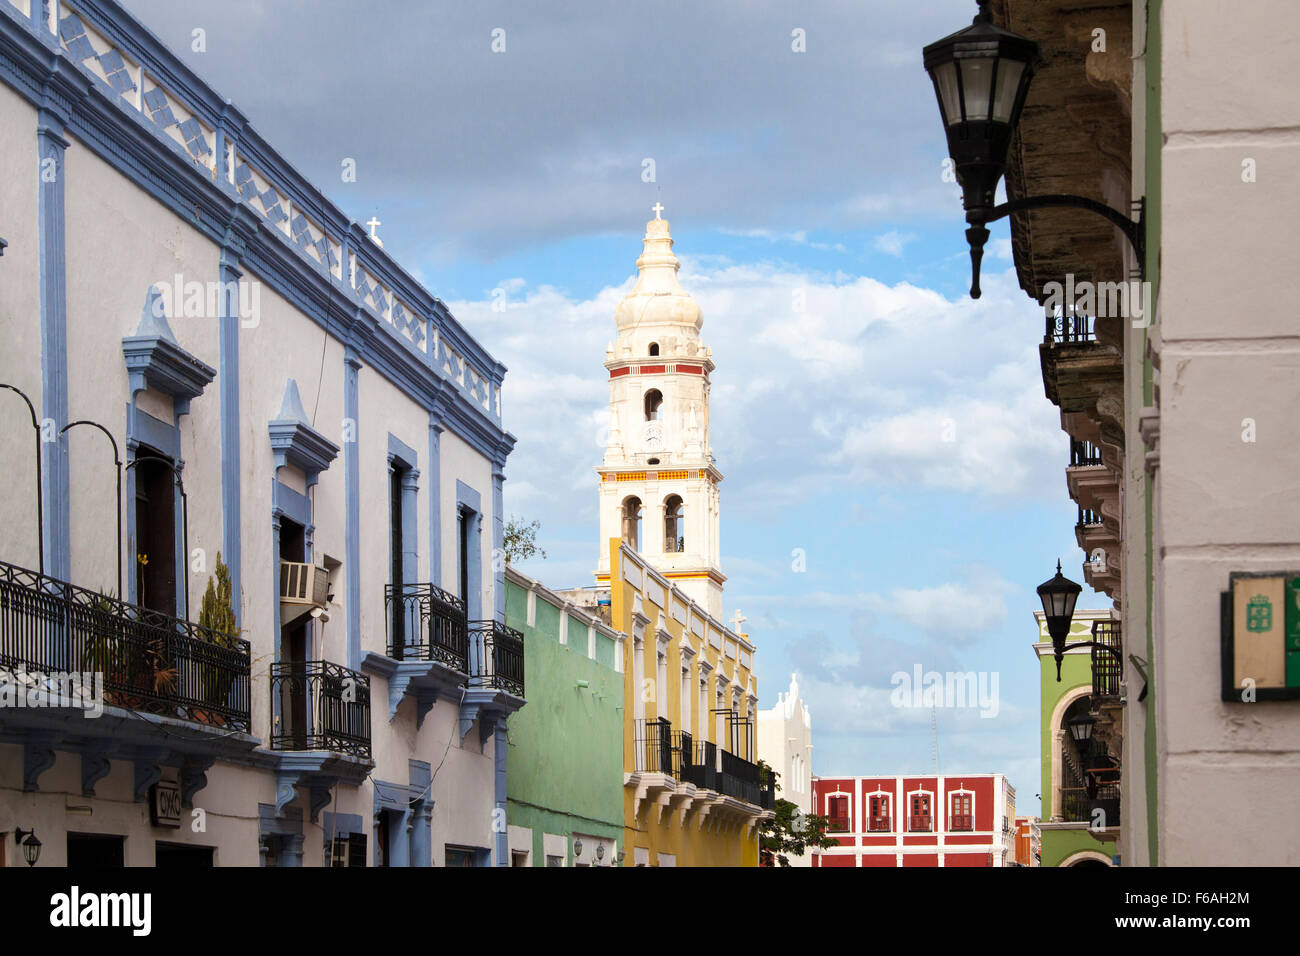 Cathedral tower and street in the colorful city of Campeche, Campeche, Mexico. - Stock Image